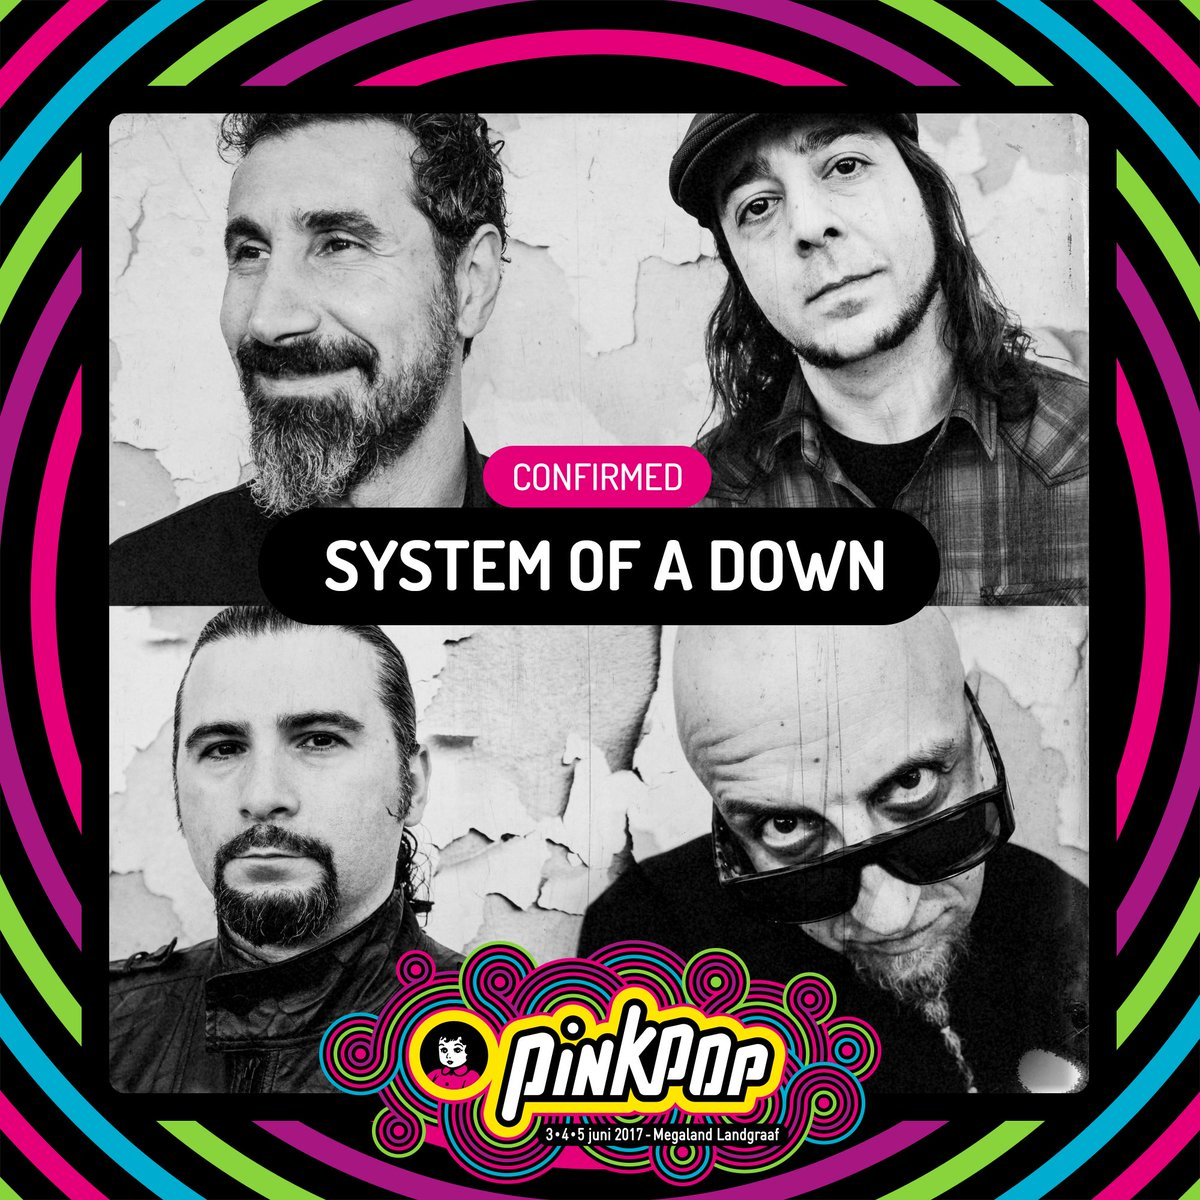 High Resolution Wallpaper | System Of A Down 1200x1200 px